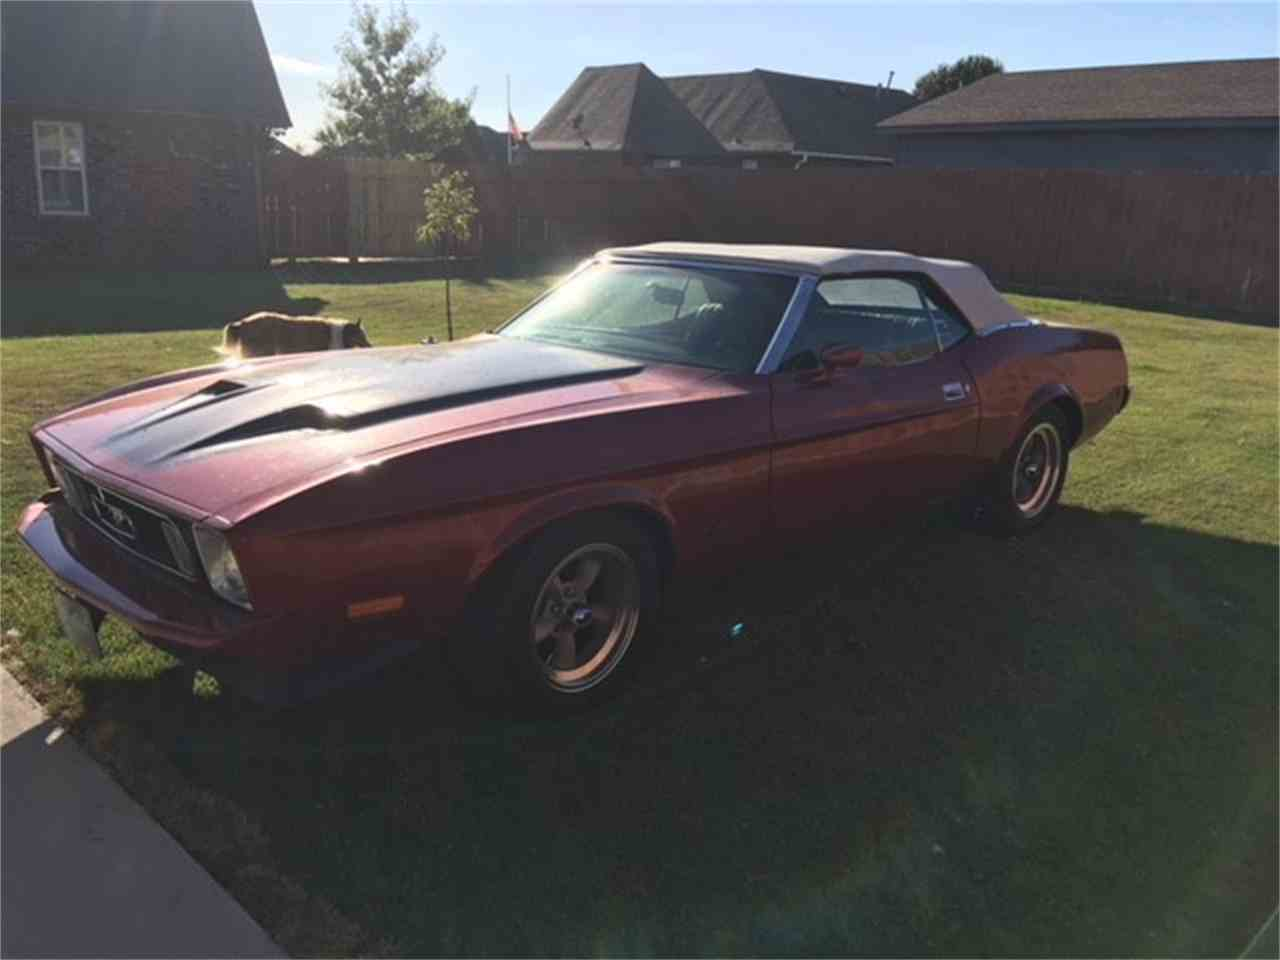 Large Picture of '73 Ford Mustang (Roush) located in Mississippi - $18,000.00 - LRQU